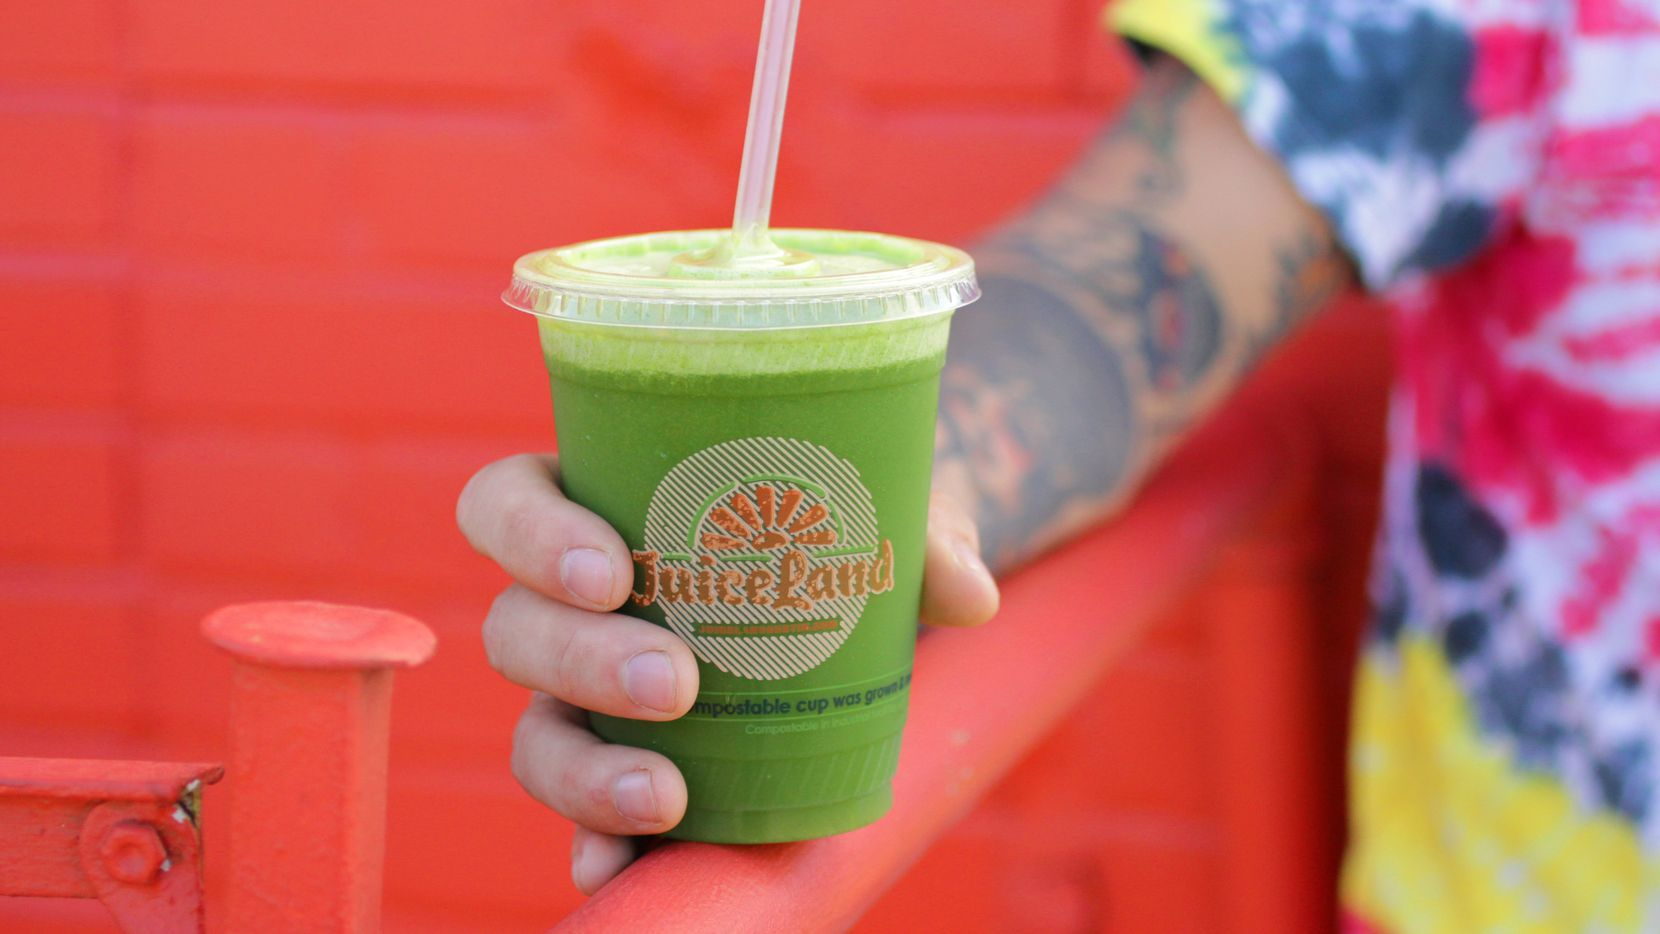 JuiceLand is a smoothie and cold-pressed juice shop with about 30 restaurants in Texas. Some of them closed in mid and late May 2021 because protesters say their workplace concerns are not being met.